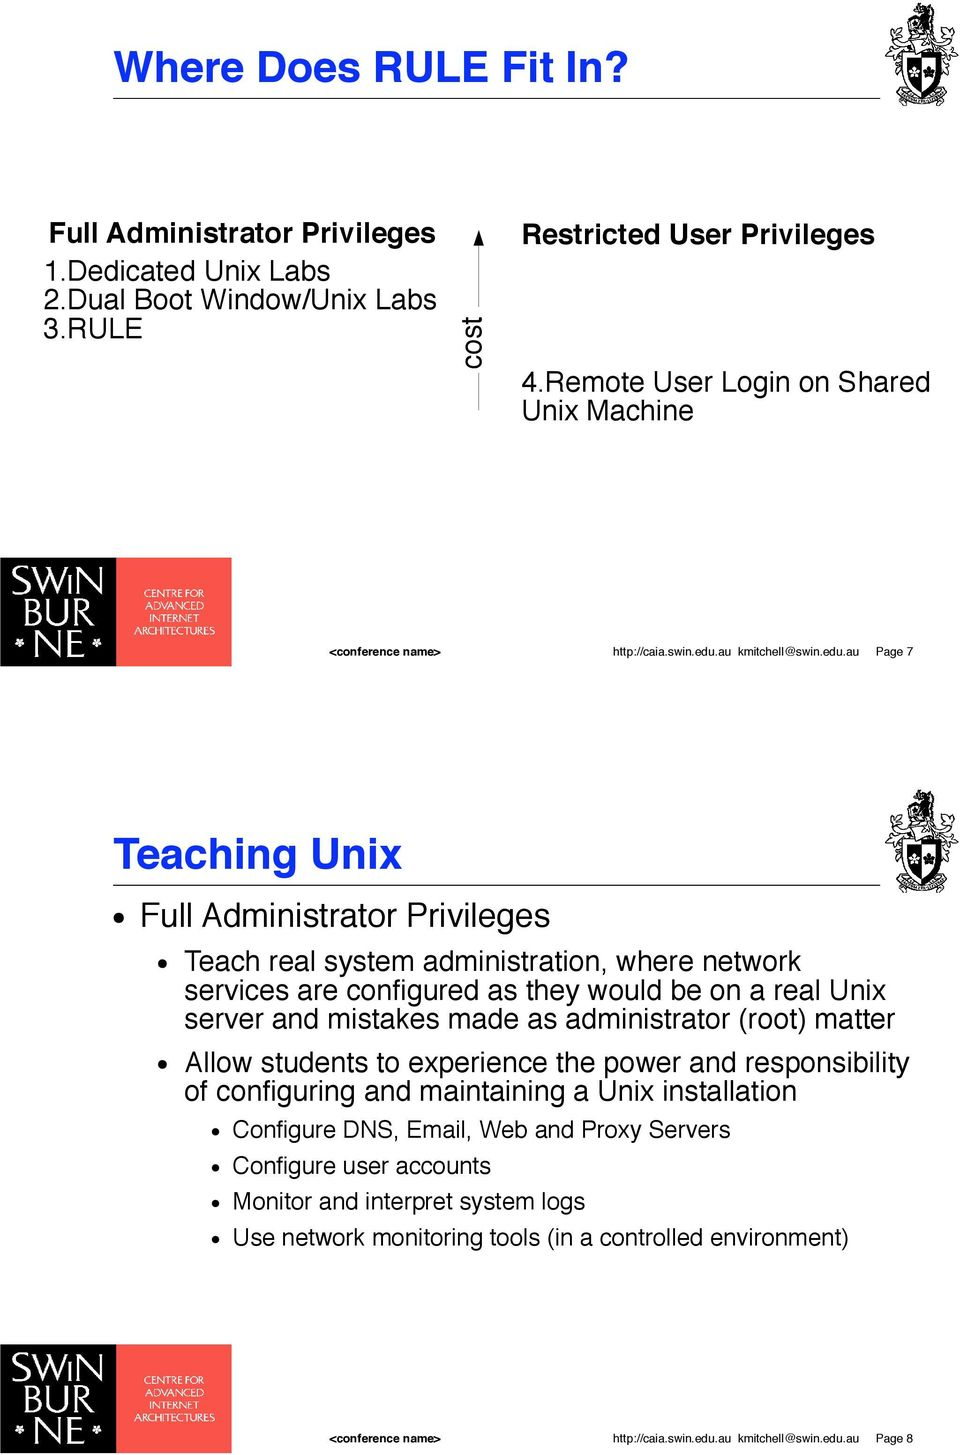 Teach real system administration, where network services are configured as they would be on a real Unix server and mistakes made as administrator (root) matter!